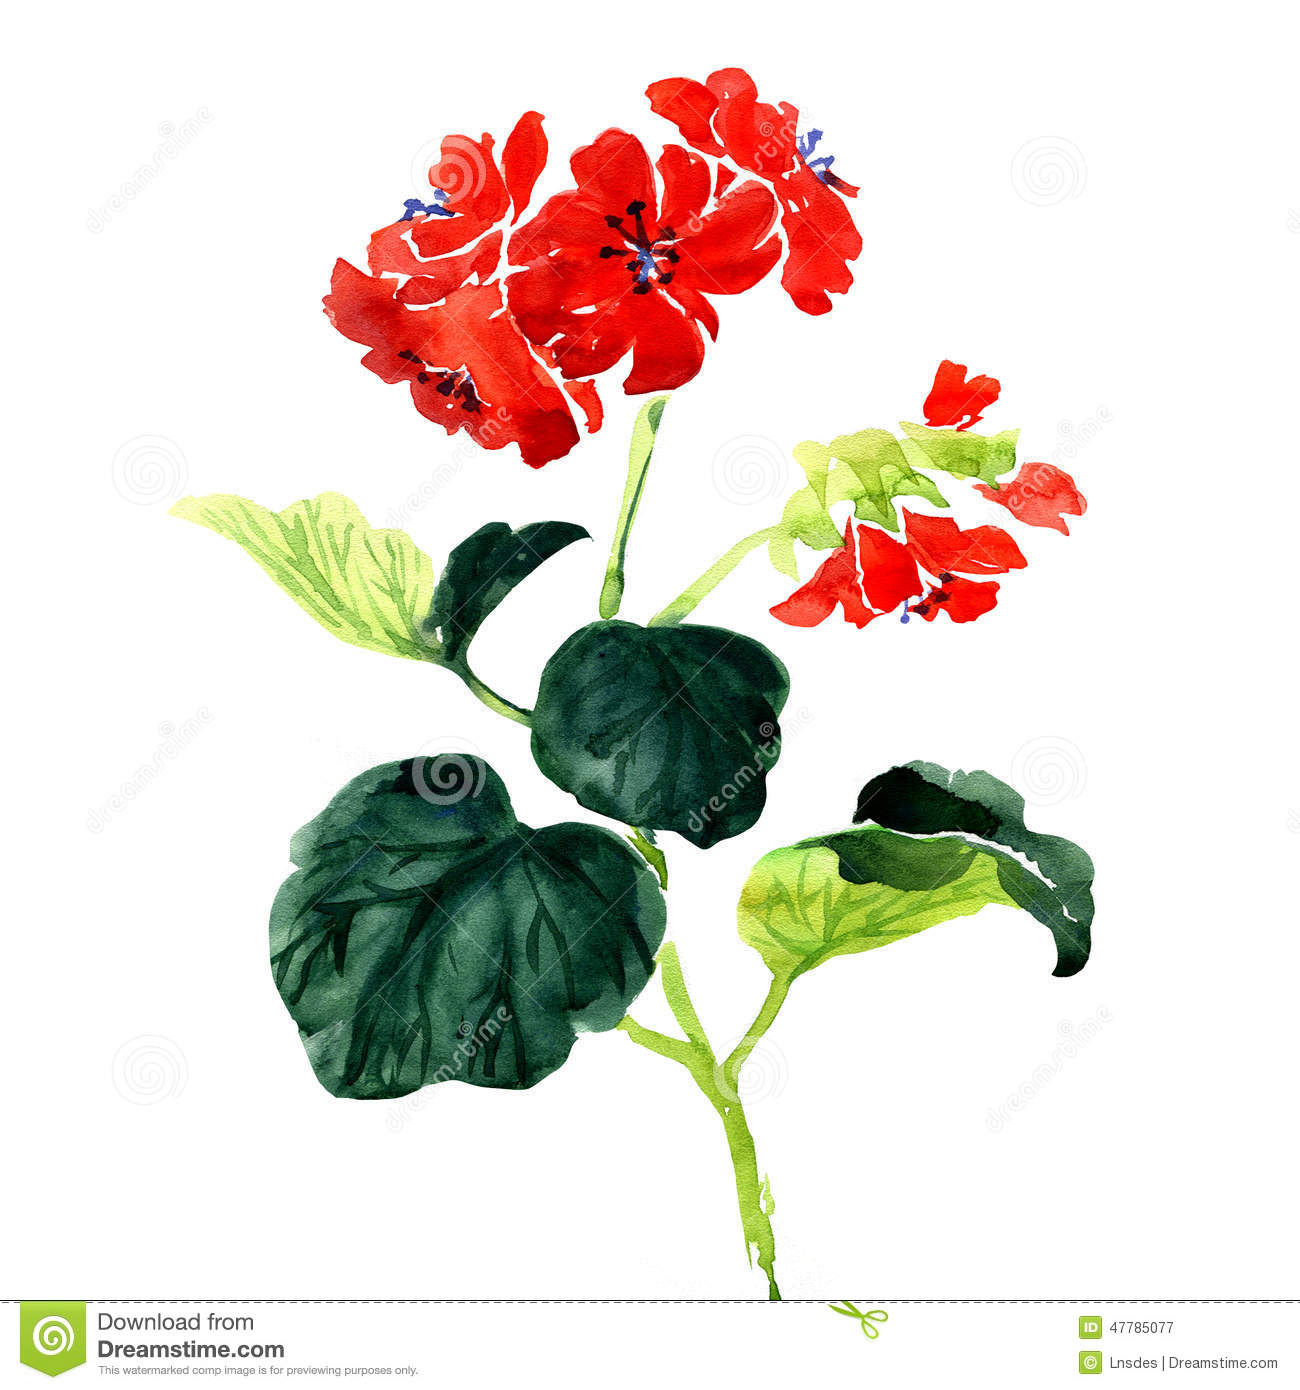 Pelargoniums clipart - Clipground